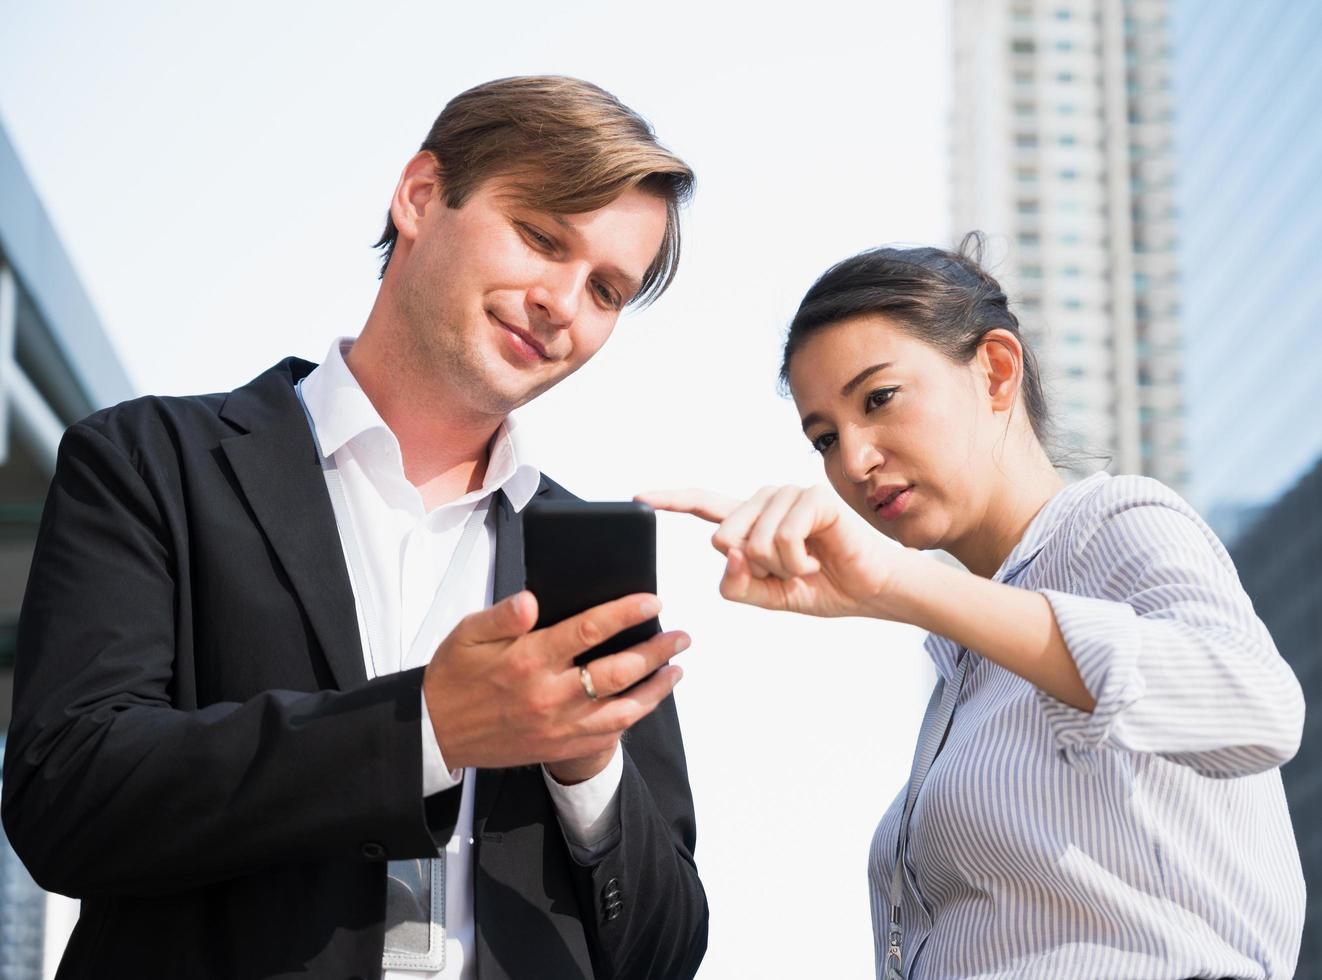 Portrait of businessman and woman looking at phone photo